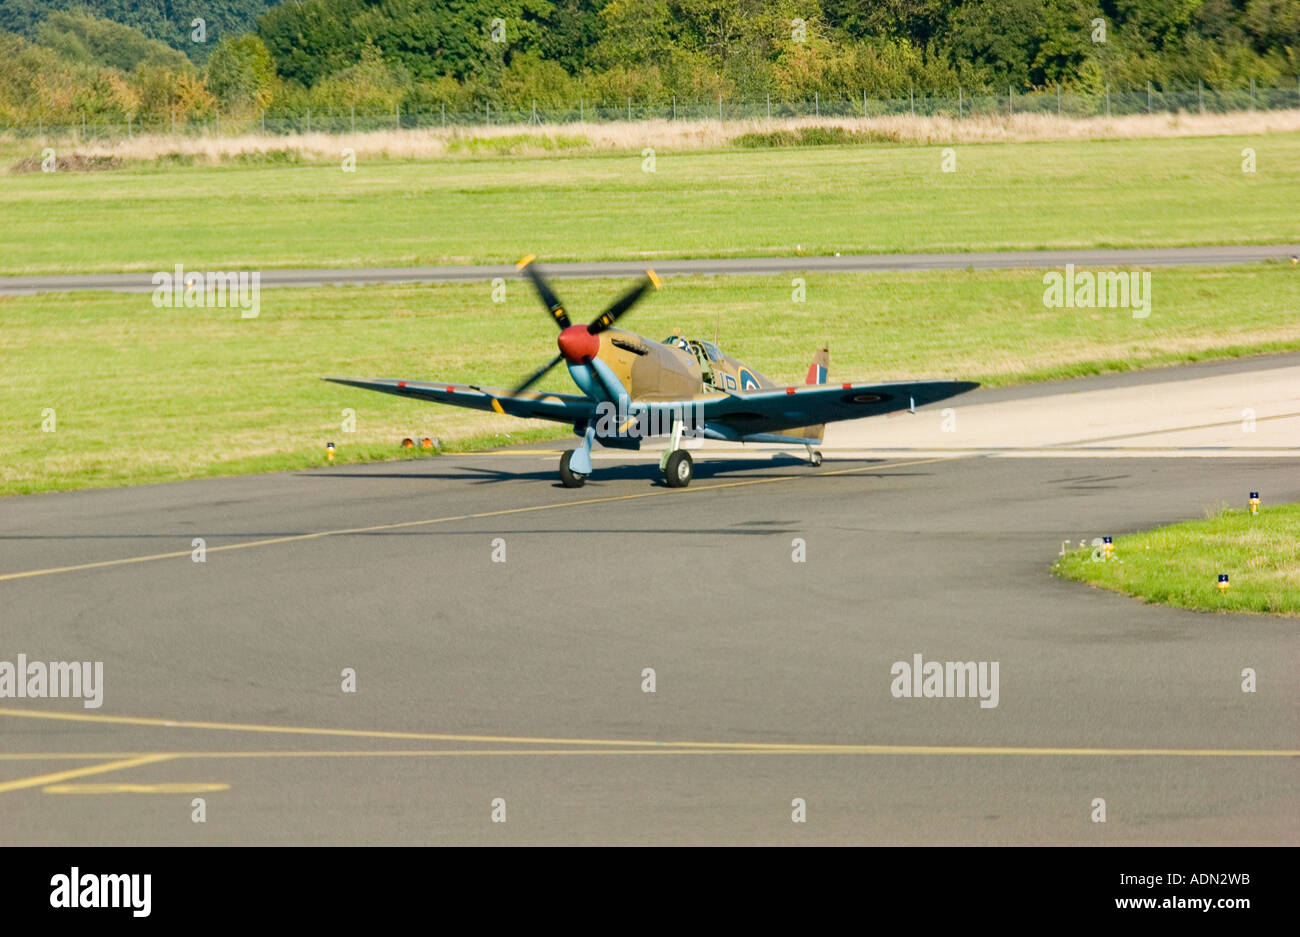 Supermarine Spitfire Mk Vb AB910 landing at Southampton Eastleigh Airport Hampshire England - Stock Image